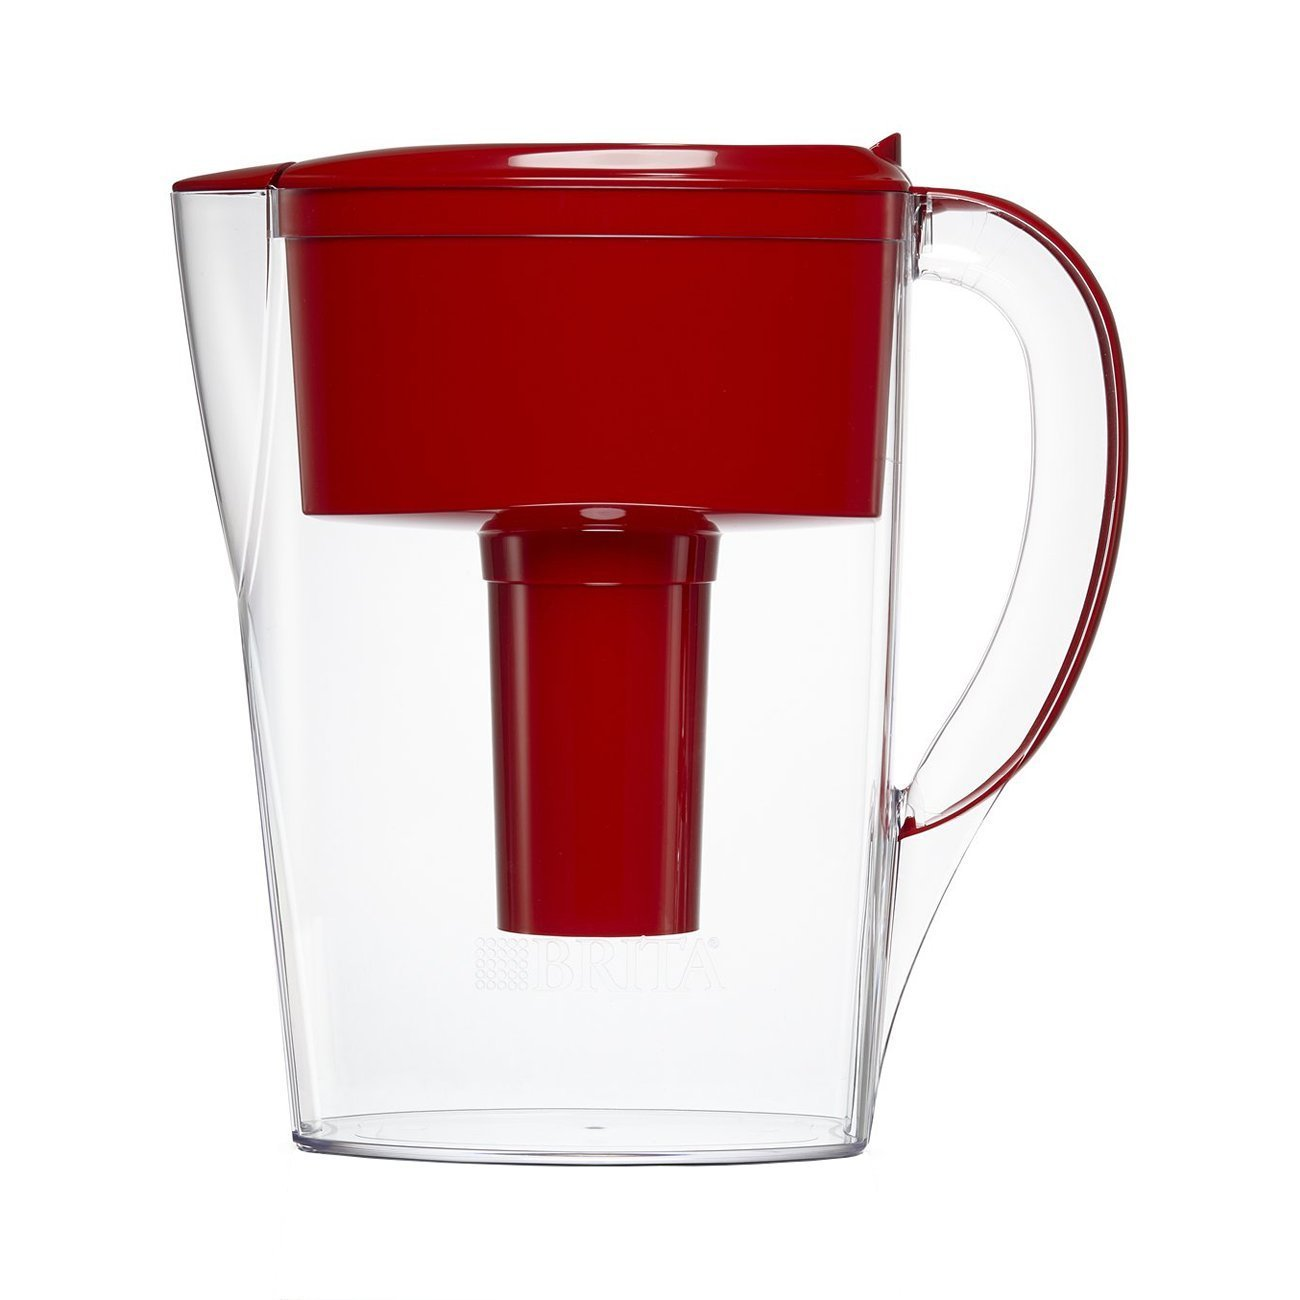 Small 6 Cup Space Saver Water Pitcher with Filter - BPA Free - Red, SMALL WATER PITCHER: This small, clear plastic pitcher has a flip top lid.., By Brita